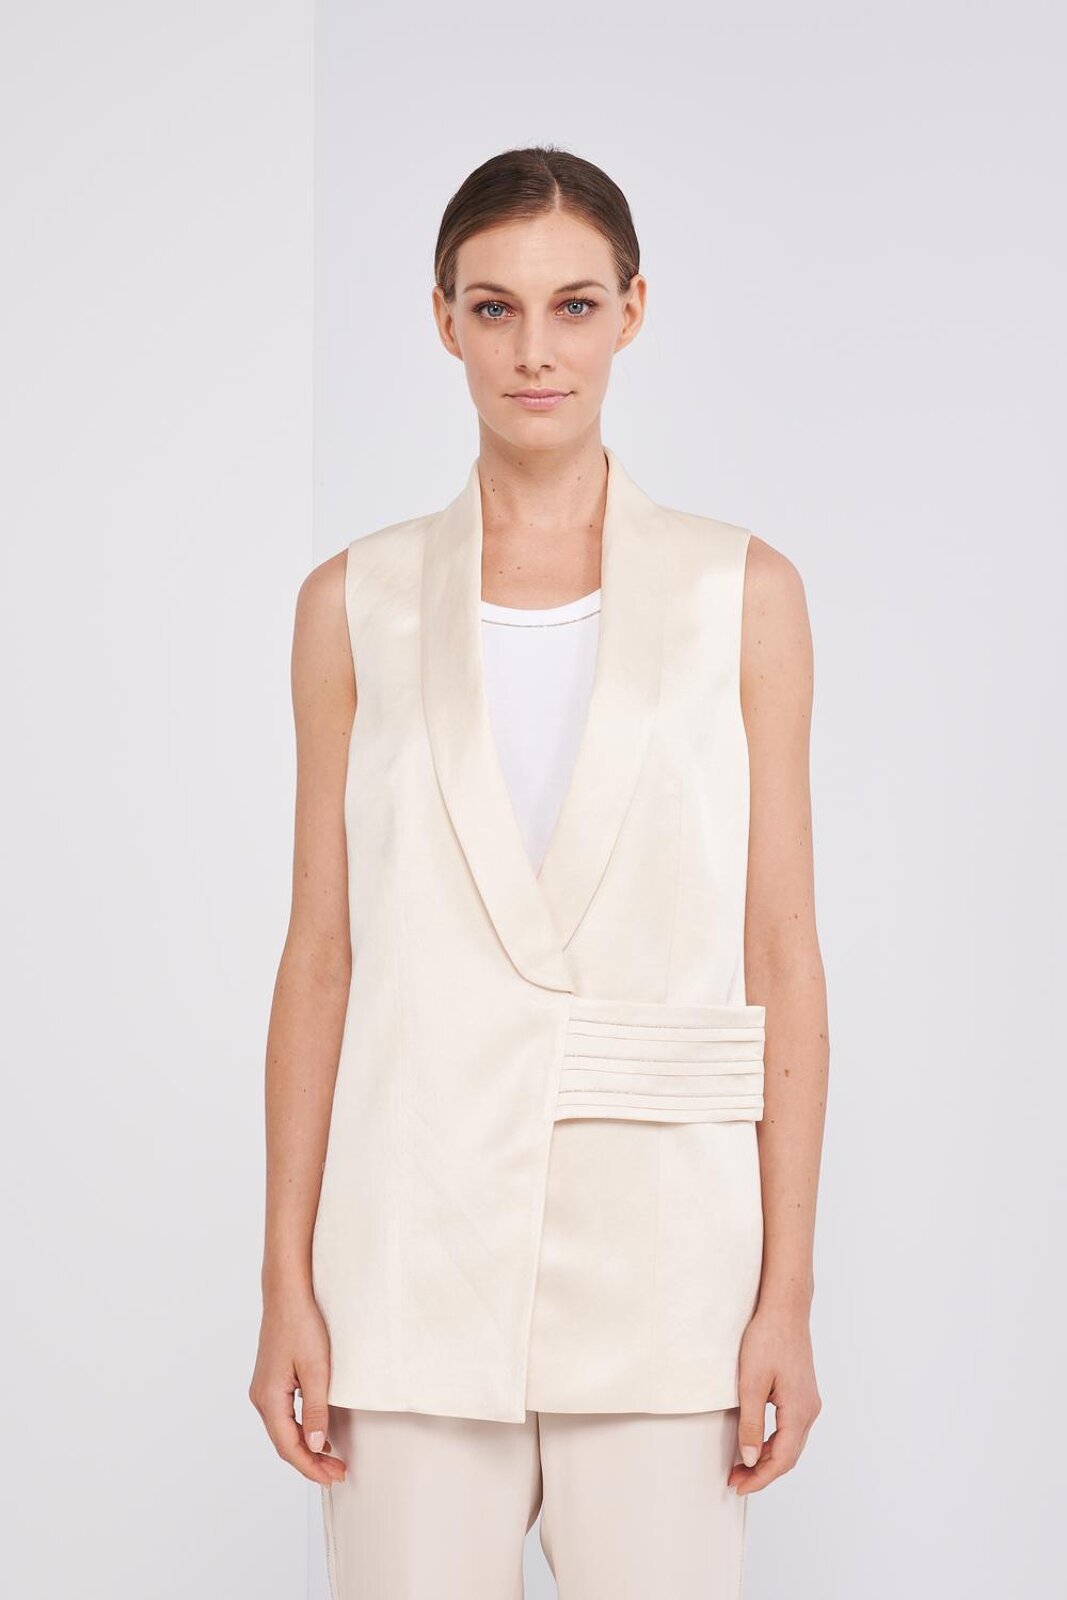 Sleeveless Vest In Soft Viscose, Linen And Cotton. Open V-neck, Metallic Detail Applied On The Belt, Concealed Closure With Crossed Buttons. Slightly oversized fit. - Peserico